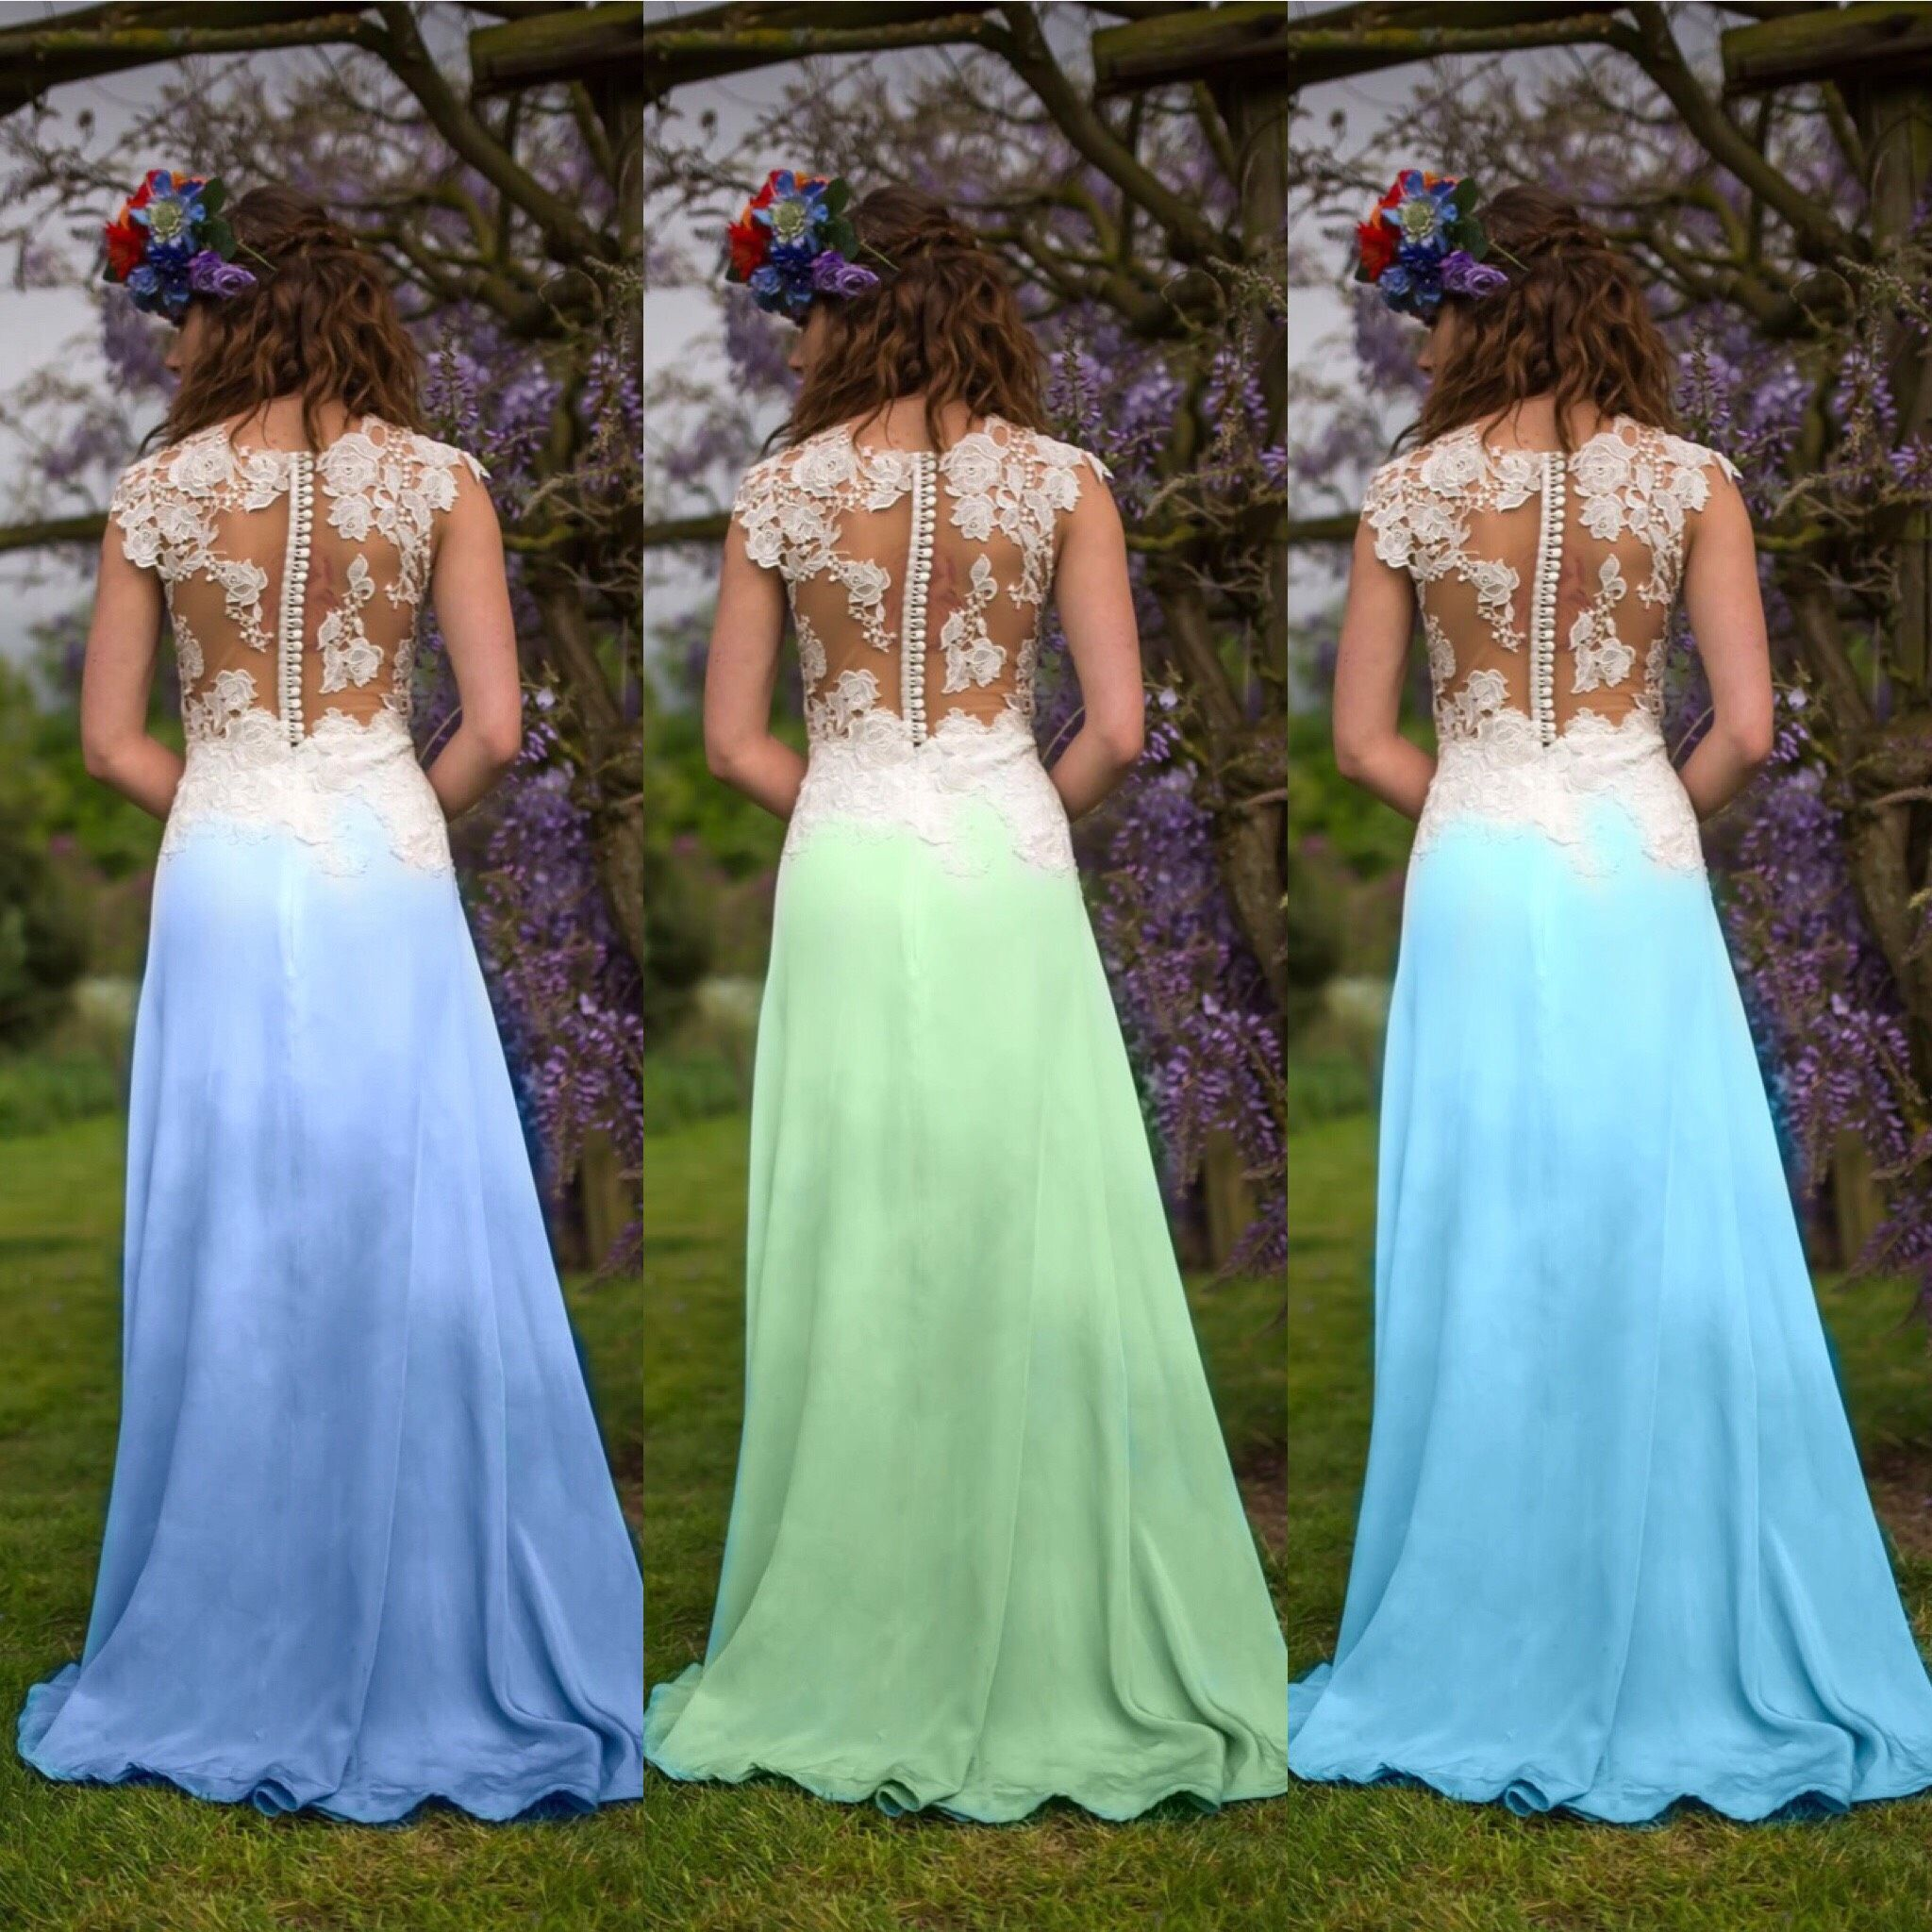 Dip Dyed Wedding Dresses For You Alternative Brides To Be Beautiful Colours To Spice Up Your Wed Colored Wedding Dress Dip Dye Wedding Dress Dye Wedding Dress,Wholesale Cheap Wedding Dresses